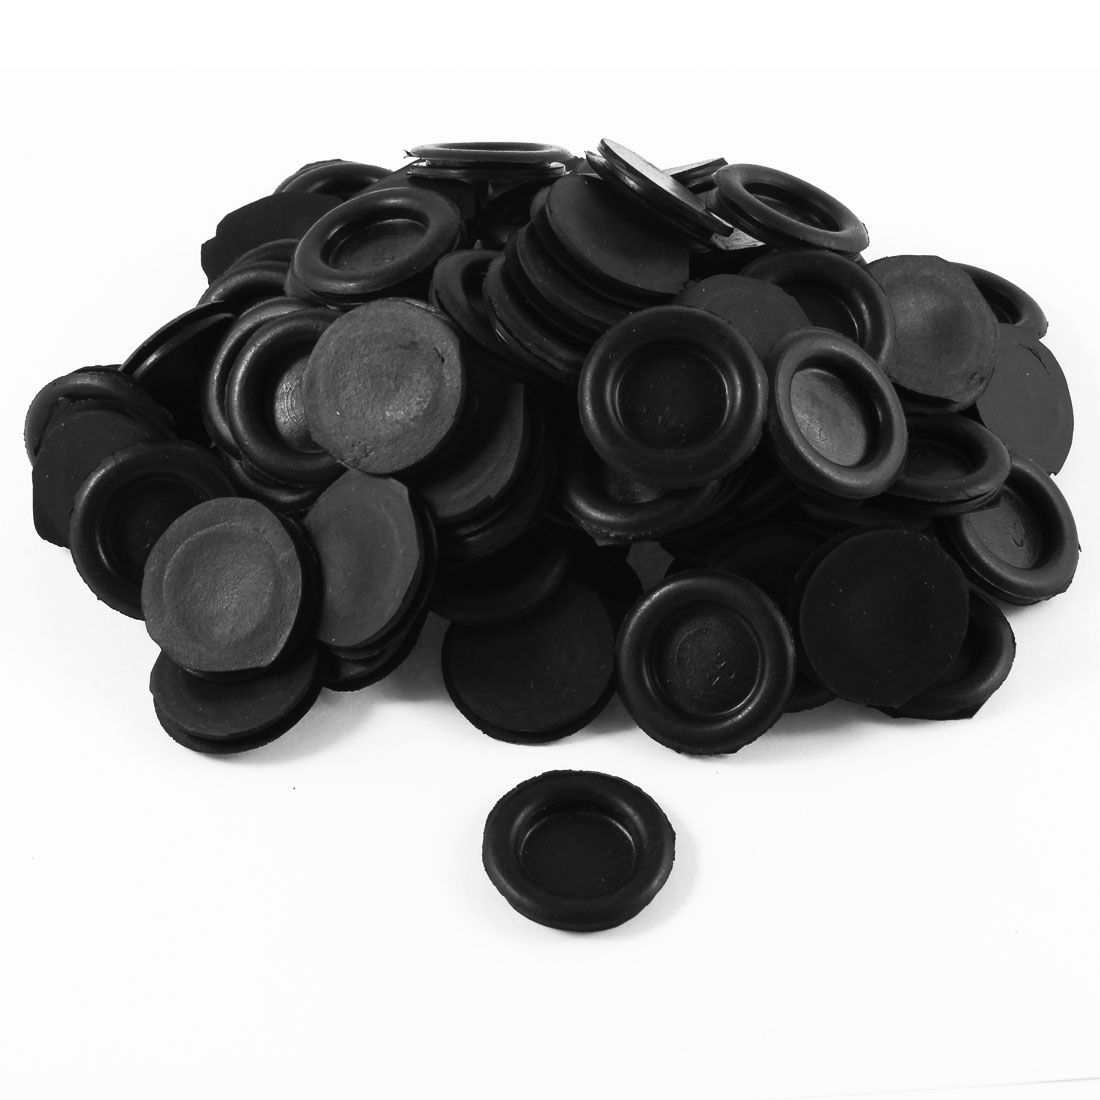 100 Pcs Black Single Sided Armature Rubber Grommets Wire Protector 25mm Dia